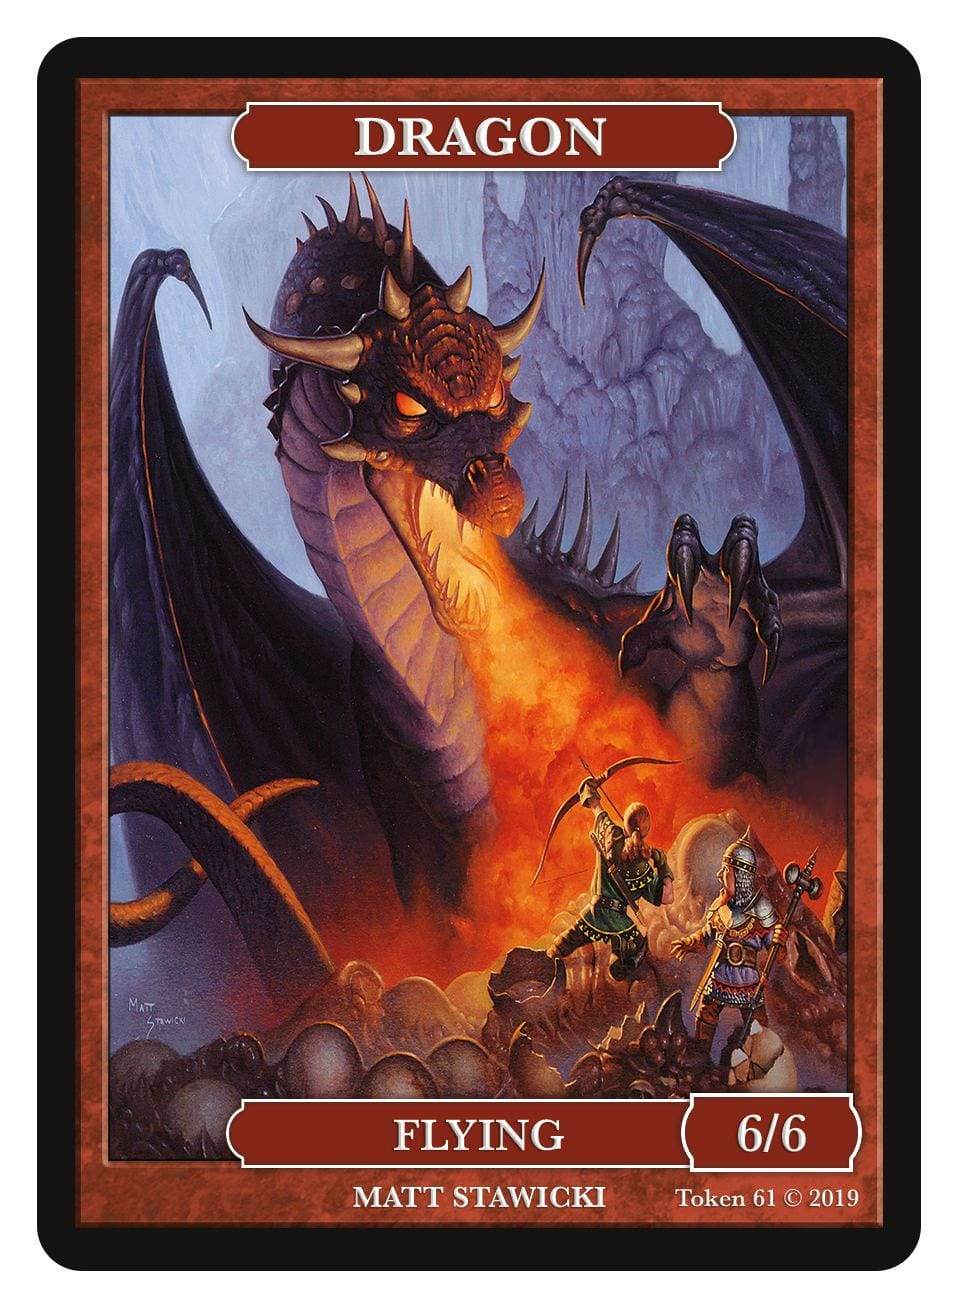 Dragon Token (6/6 - Flying) by Matt Stawicki - Token - Original Magic Art - Accessories for Magic the Gathering and other card games